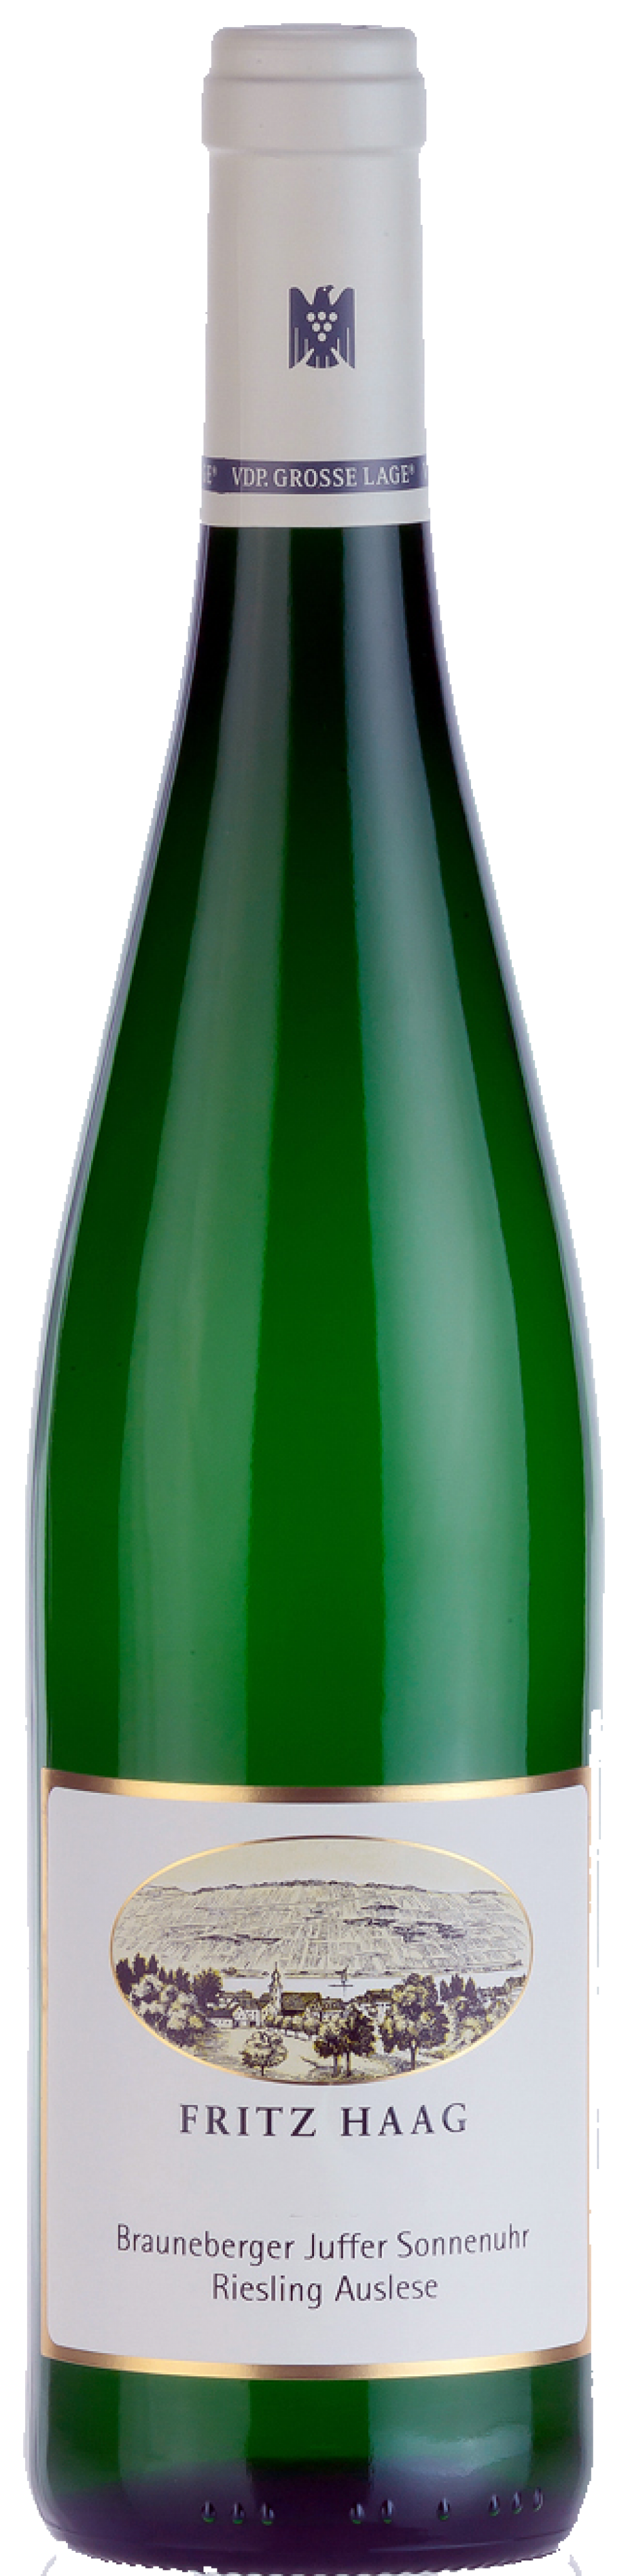 files/images/wines/Germany/fritz-haag-mosel/2012 brauneberger Juffer riesling sonnenuhr auslese copy.png